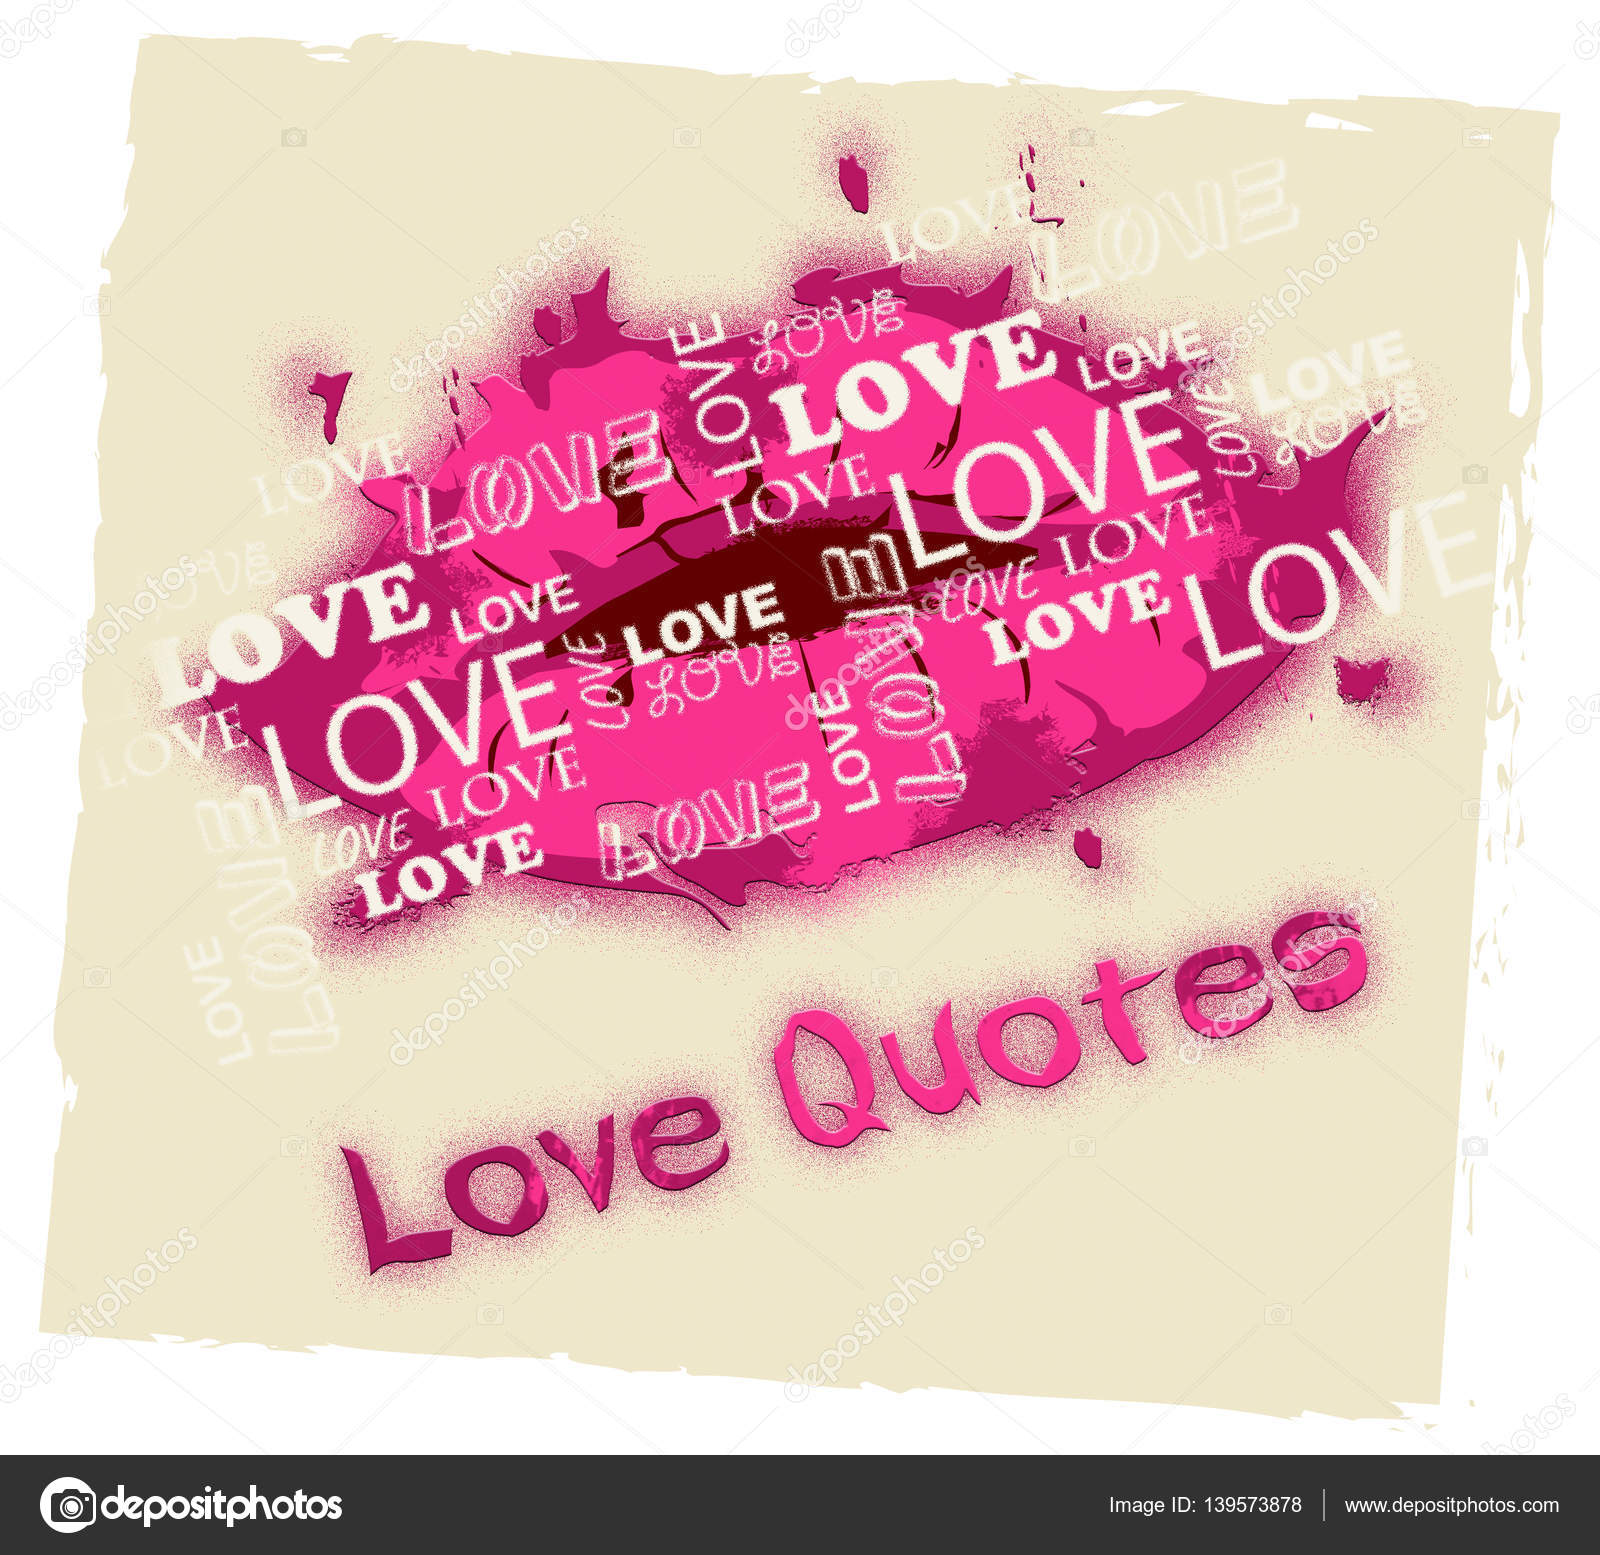 Love Quotes Shows Loving Inspiration And Affection Stock Photo